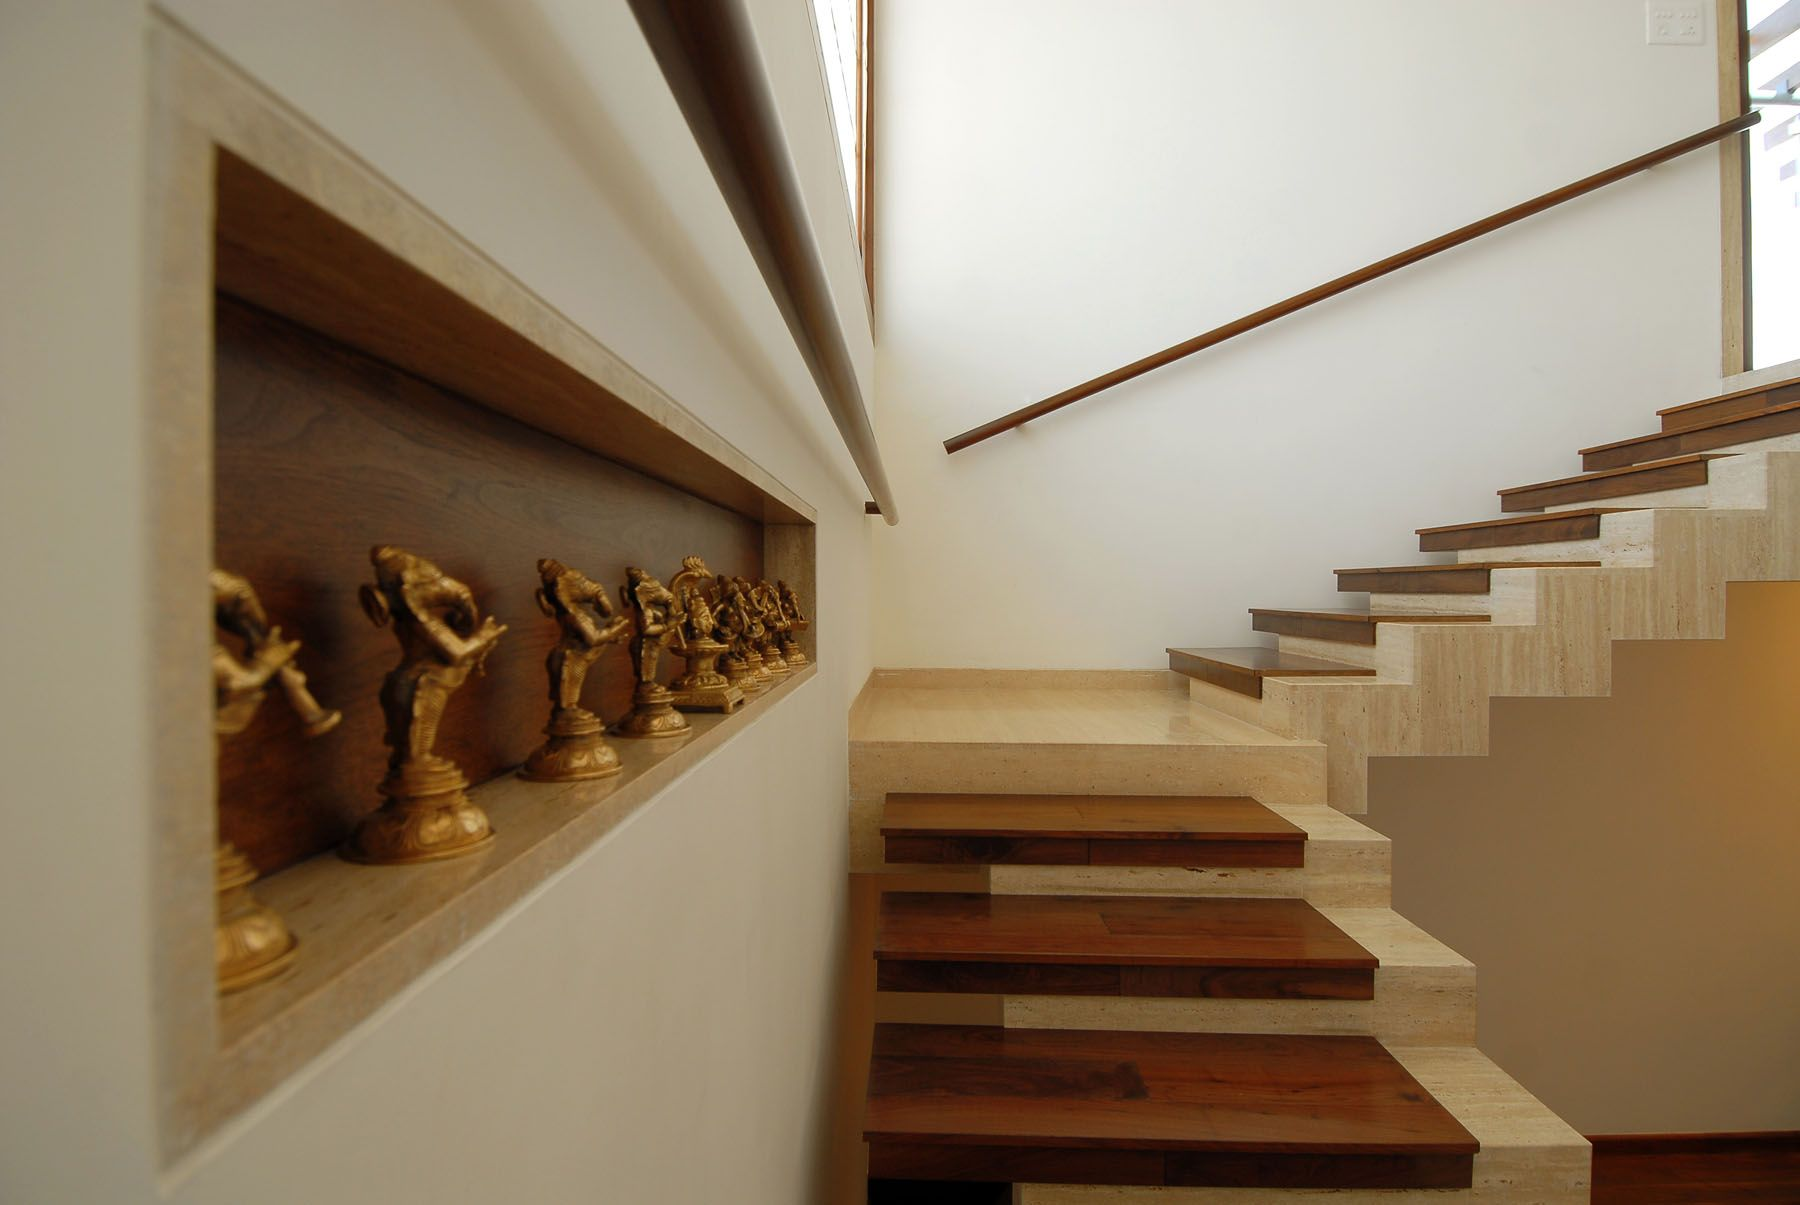 Apartment Interior Design Pictures Bangalore duplex house interior design #stairs pinnedwww.modlar